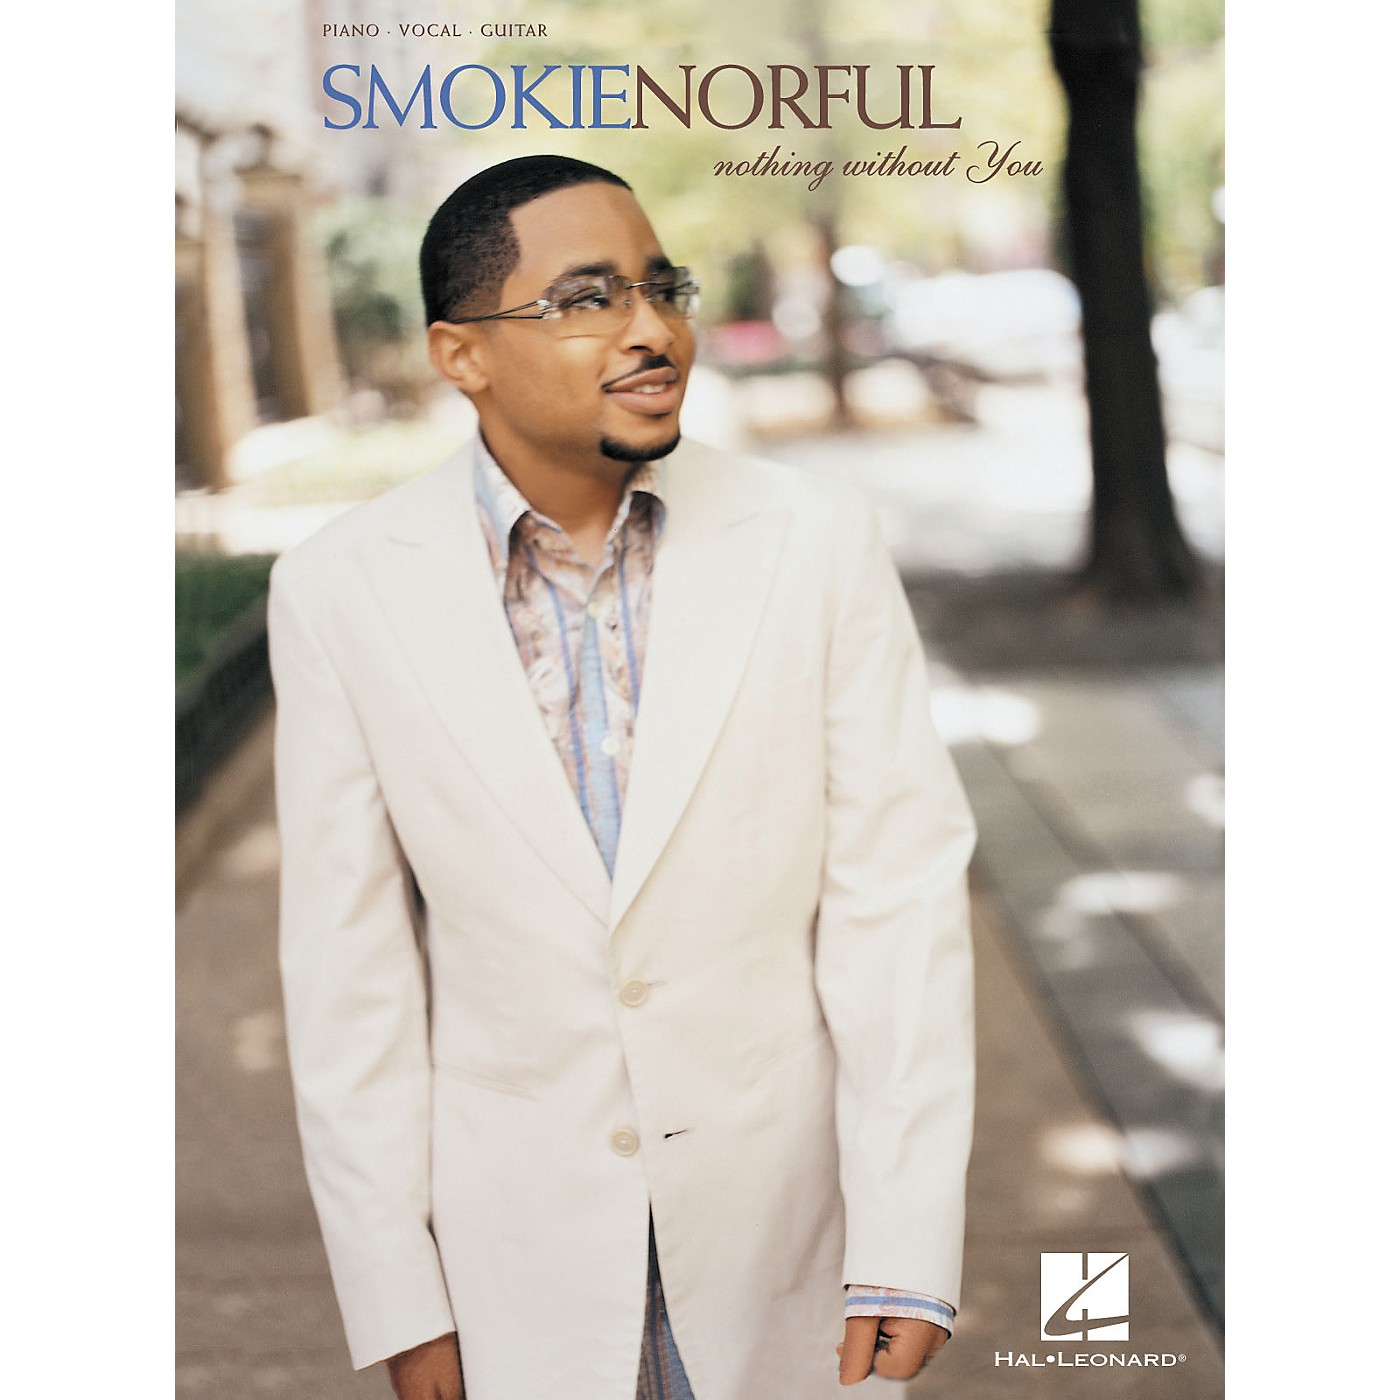 Hal Leonard Smokie Norful - Nothing without You Piano, Vocal, Guitar Songbook thumbnail